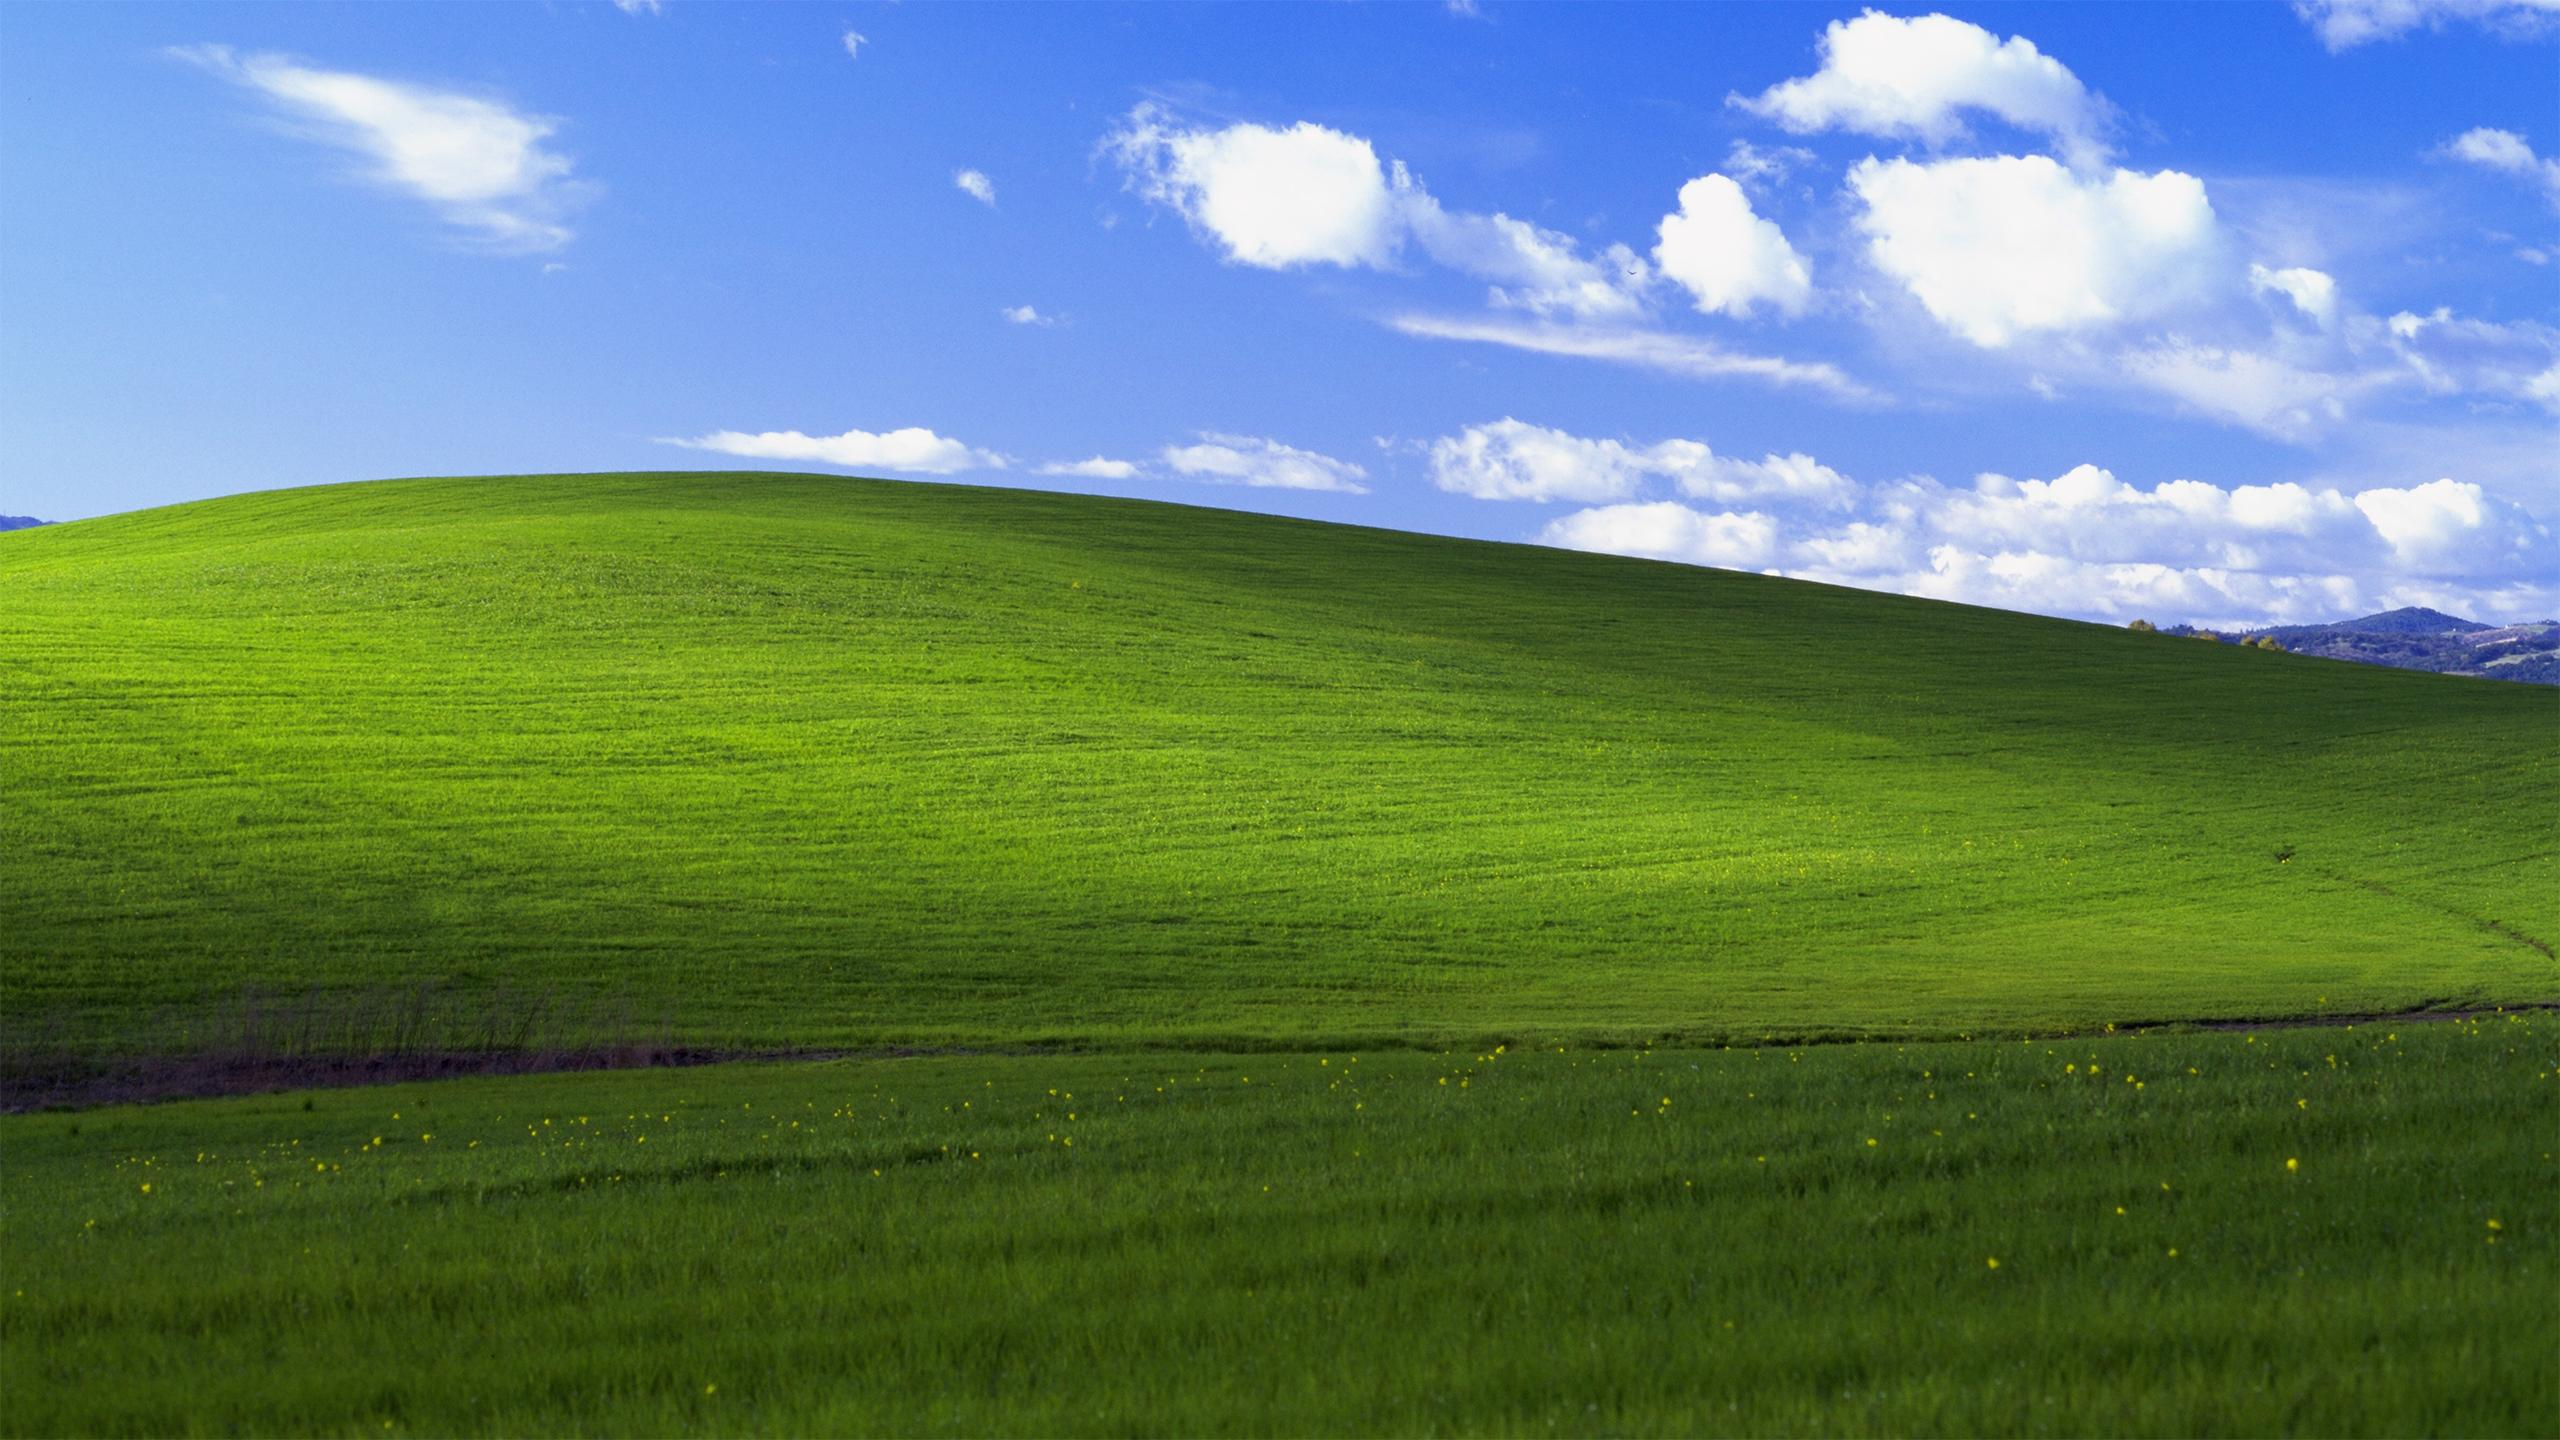 used for the Windows XP default wallpaper is mostly untouched 2560x1440